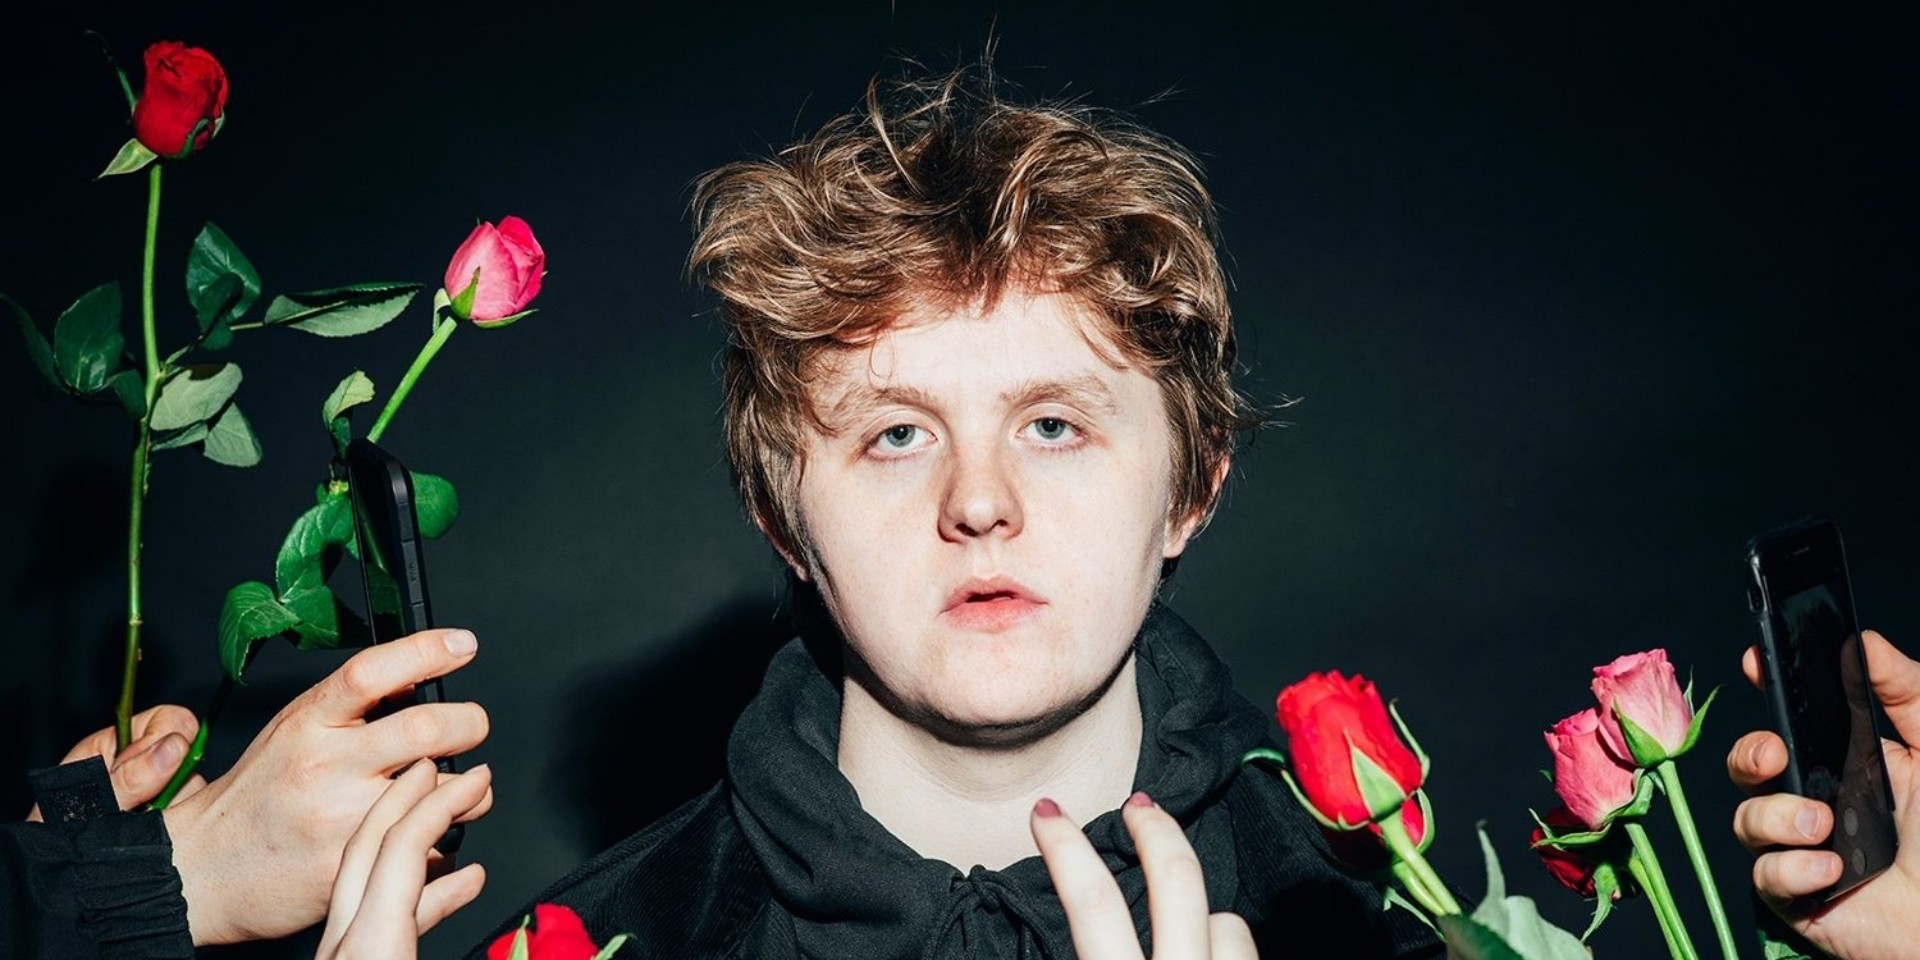 Lewis Capaldi to make Singapore debut next January